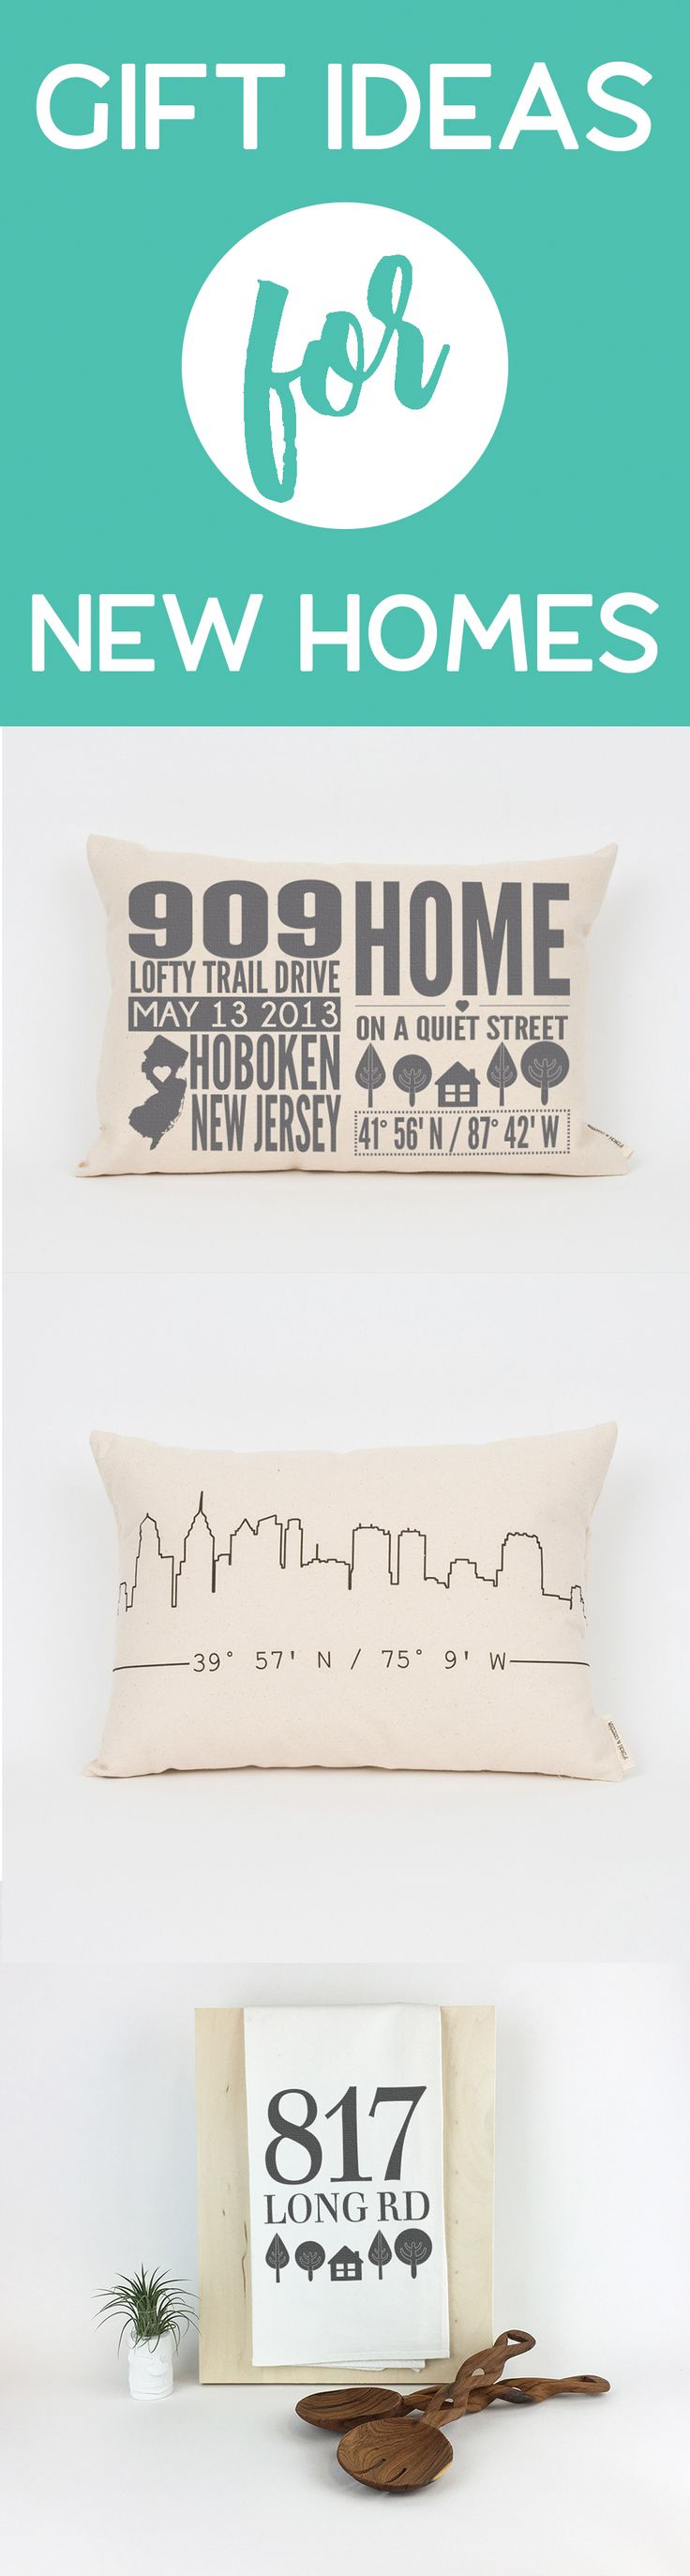 The 7 best Client gifts images on Pinterest | Gifts for new ...